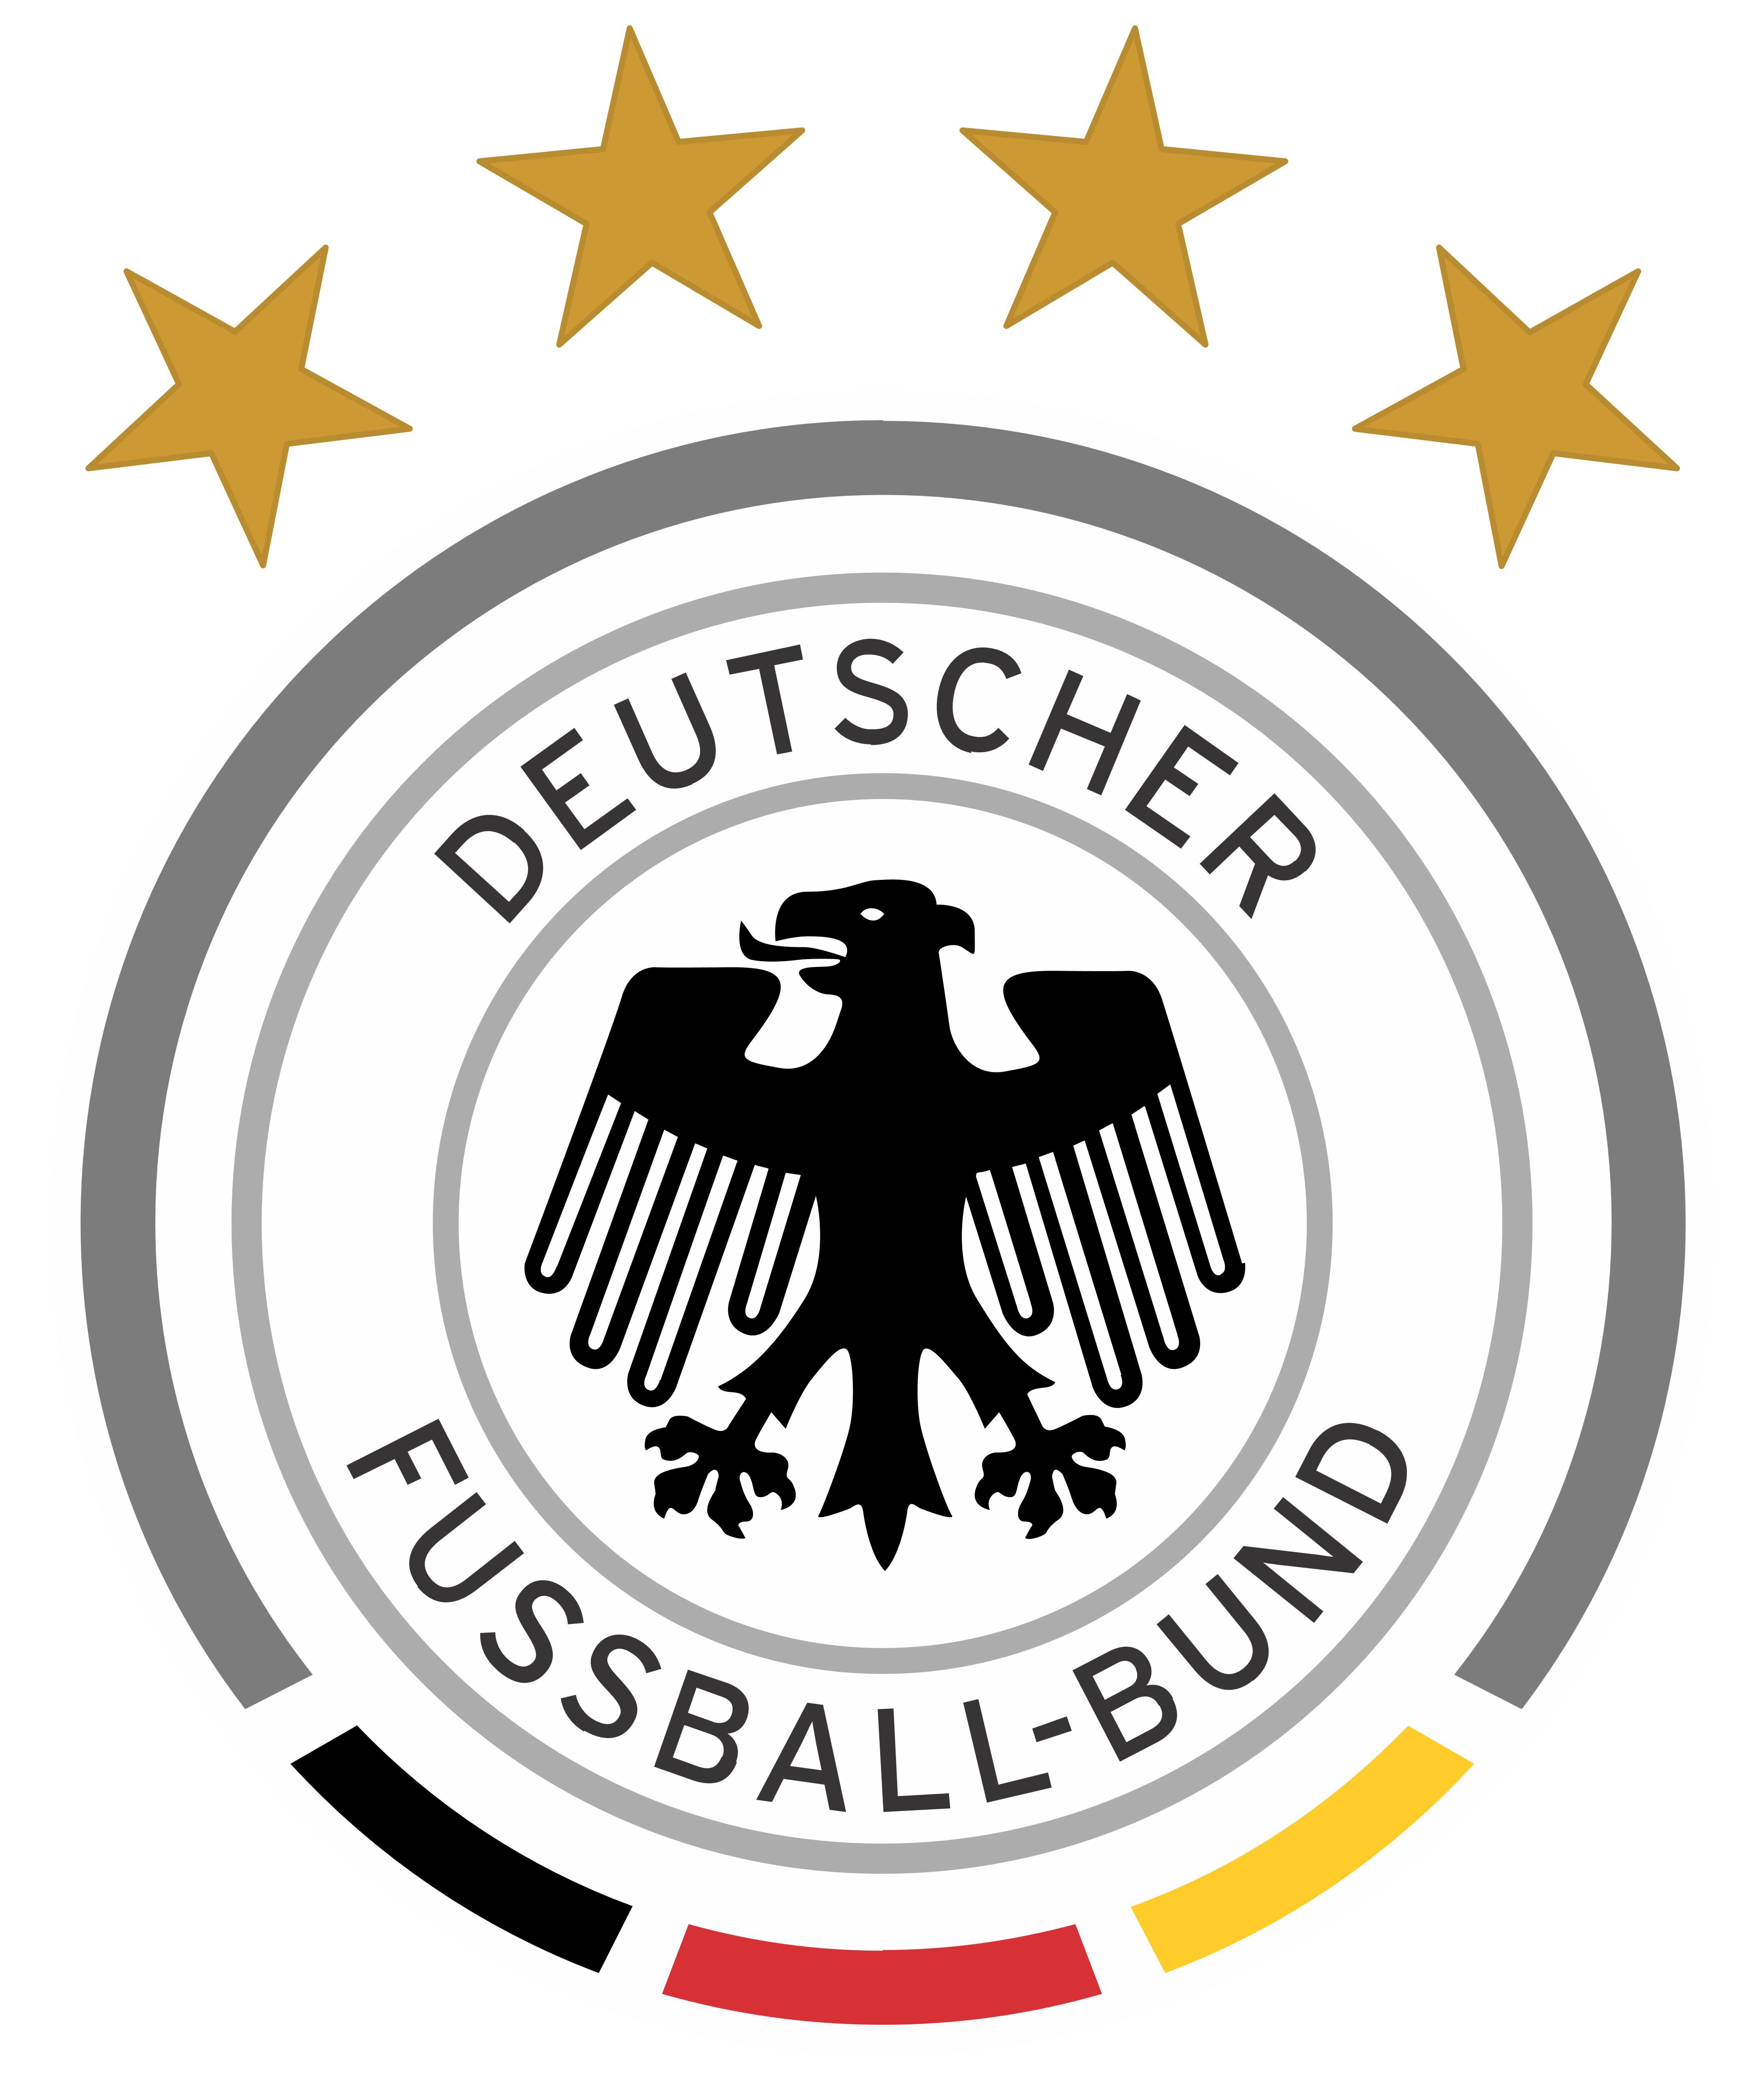 Football logos png. Germany national team download